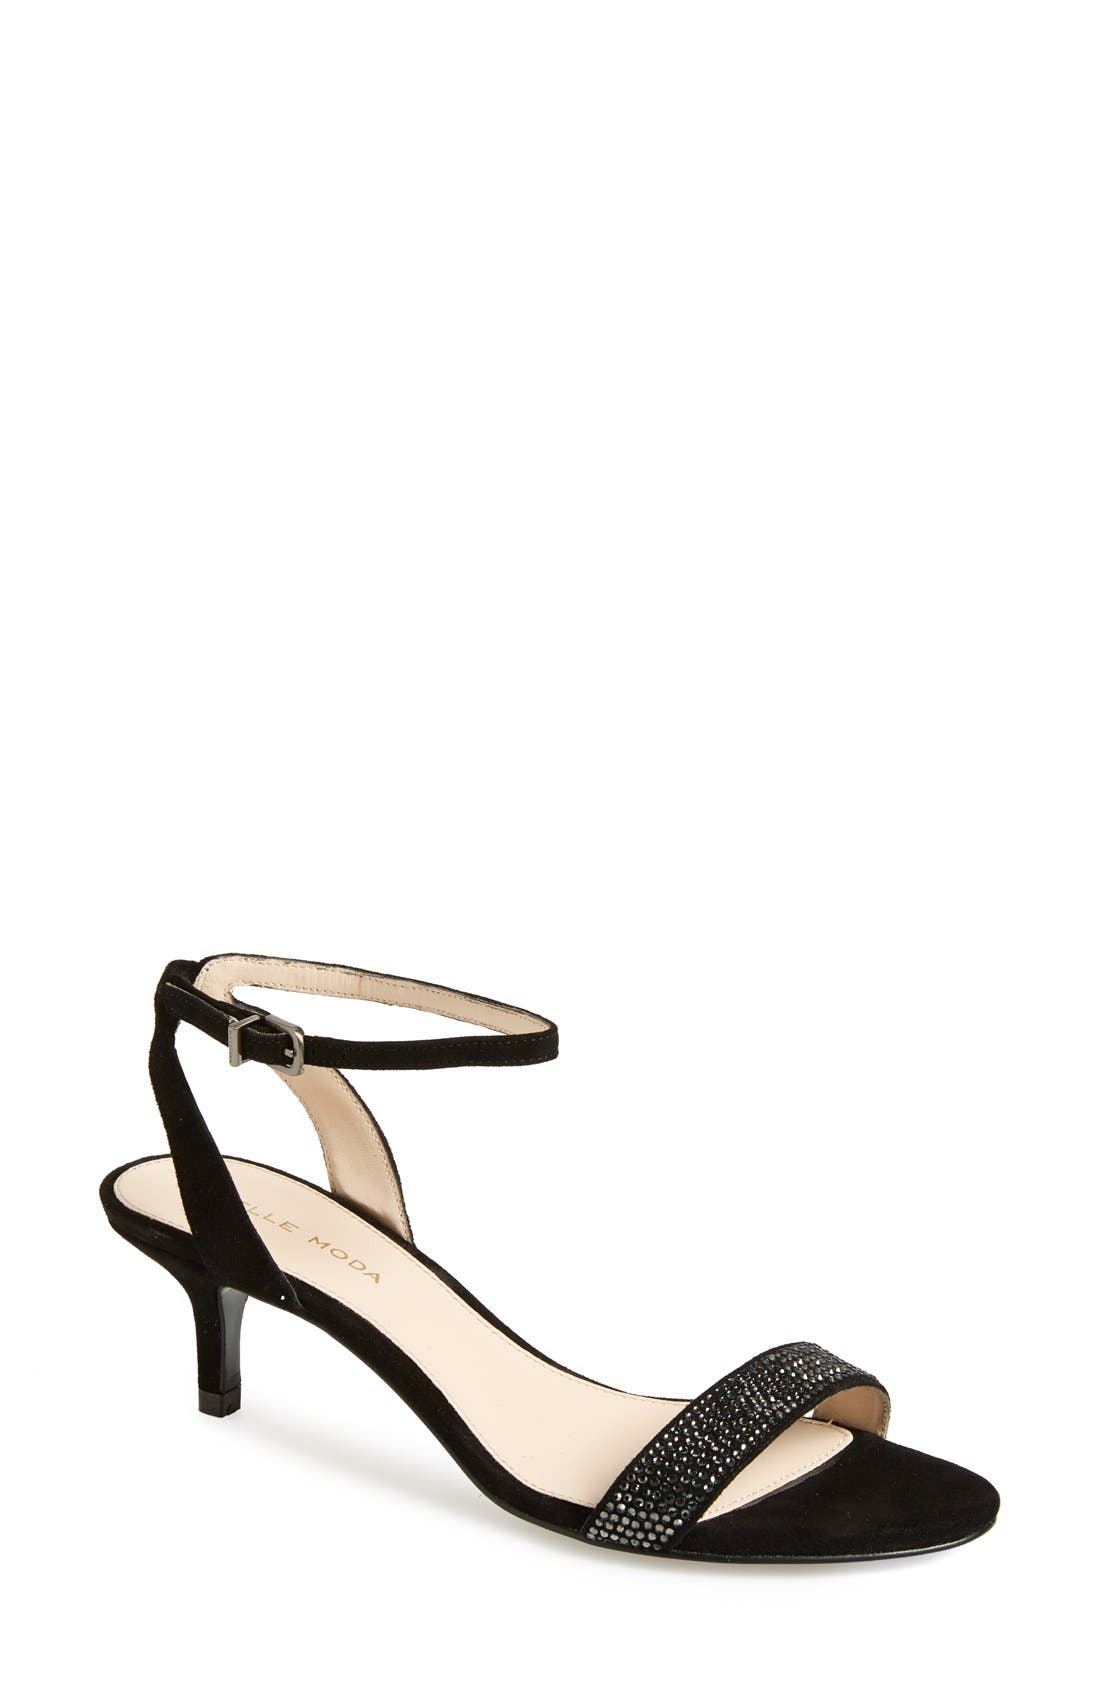 'Fabia' Sandal,                         Main,                         color, BLACK SUEDE